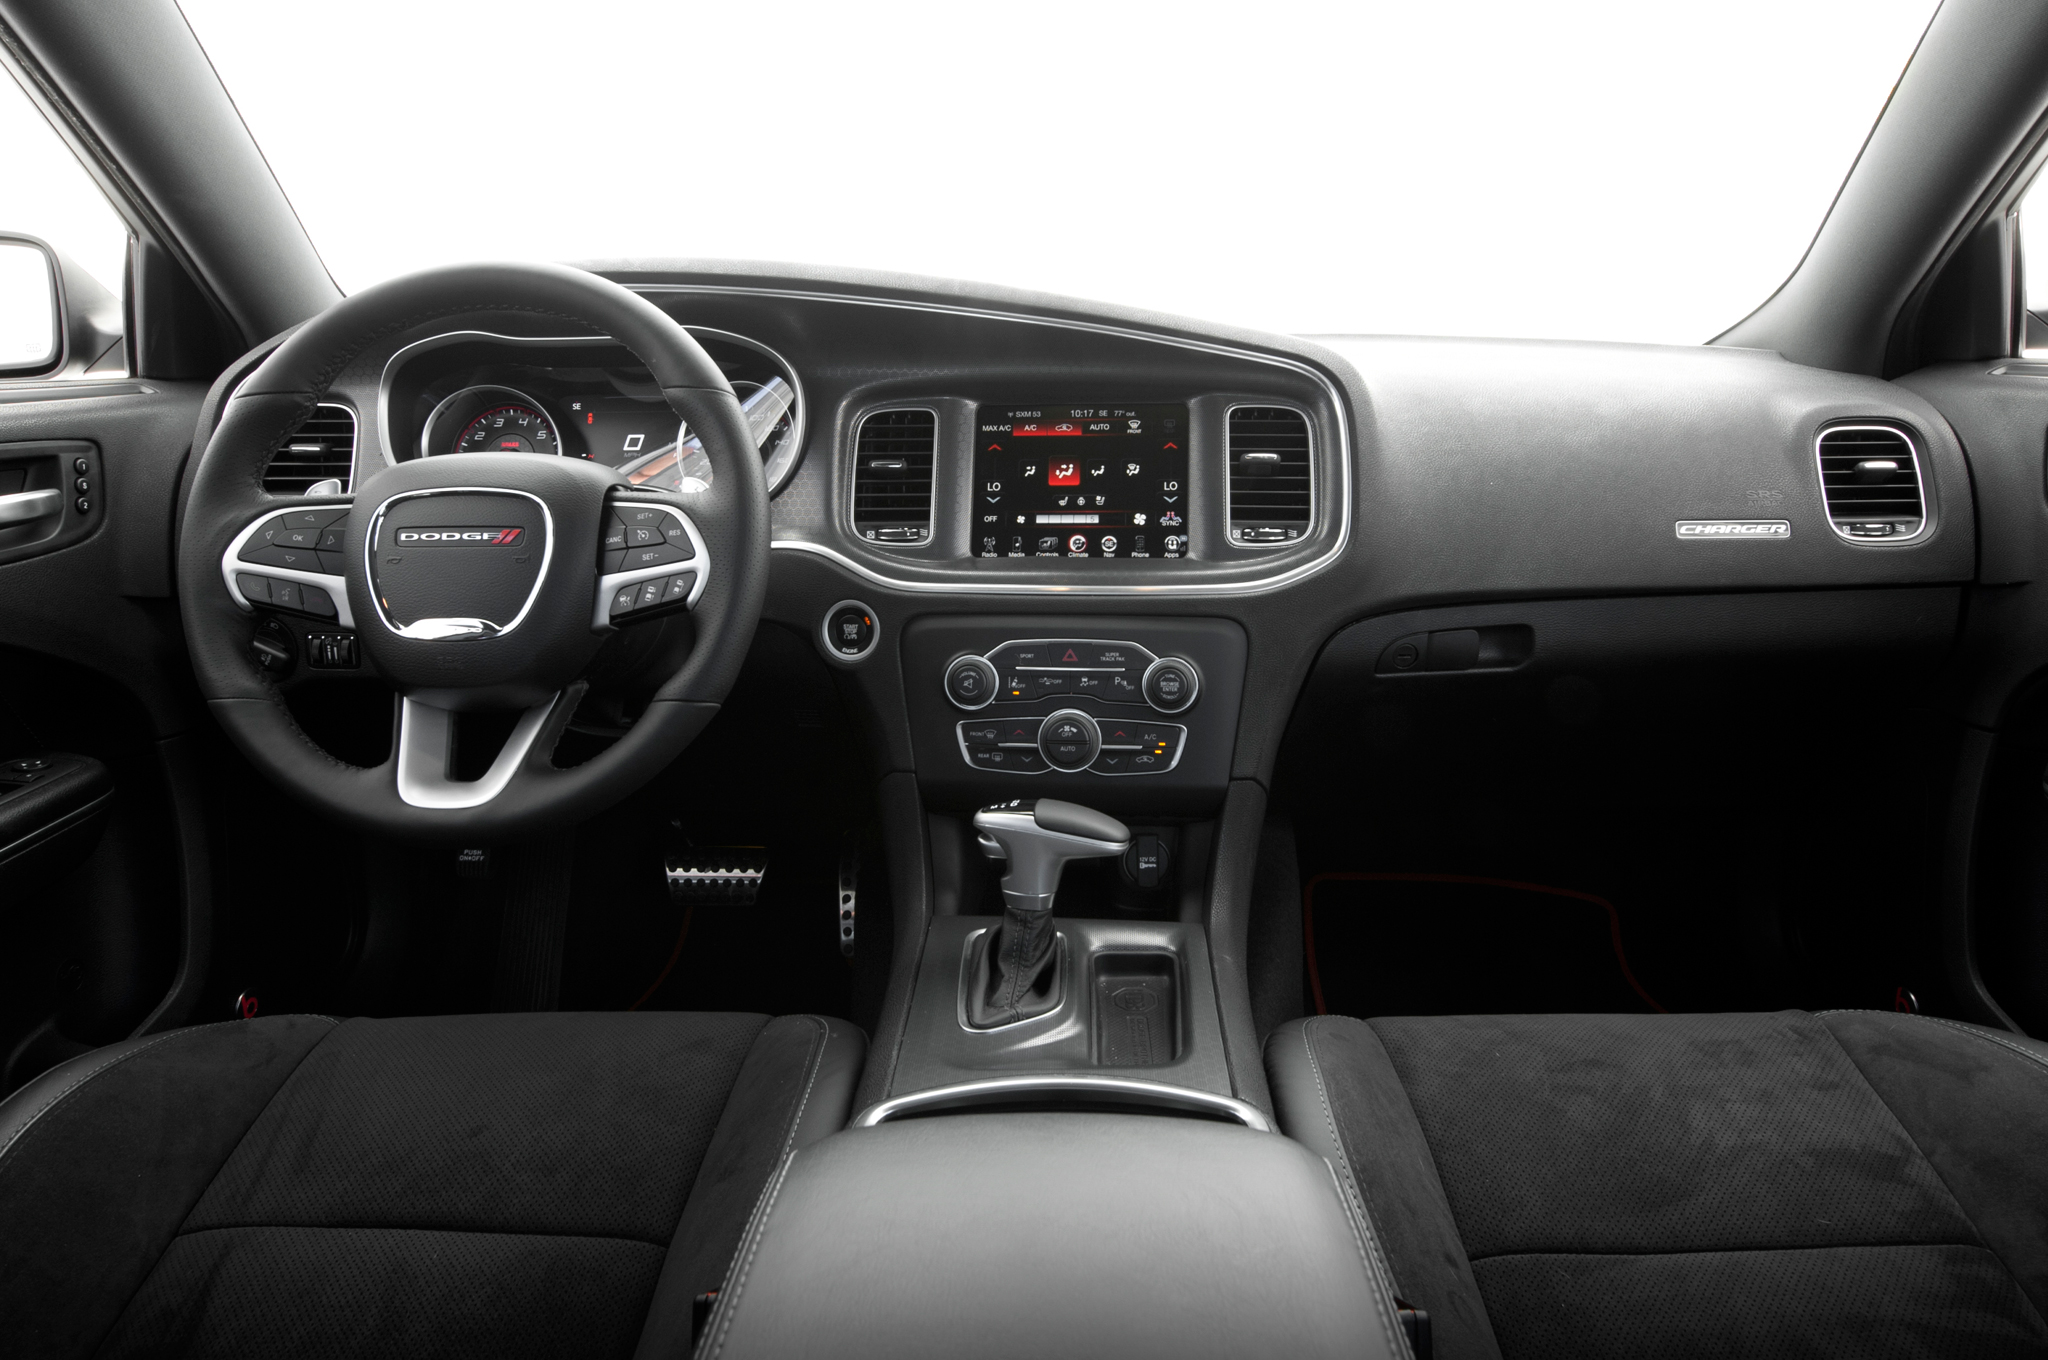 2015 Dodge Charger Dashboard Details